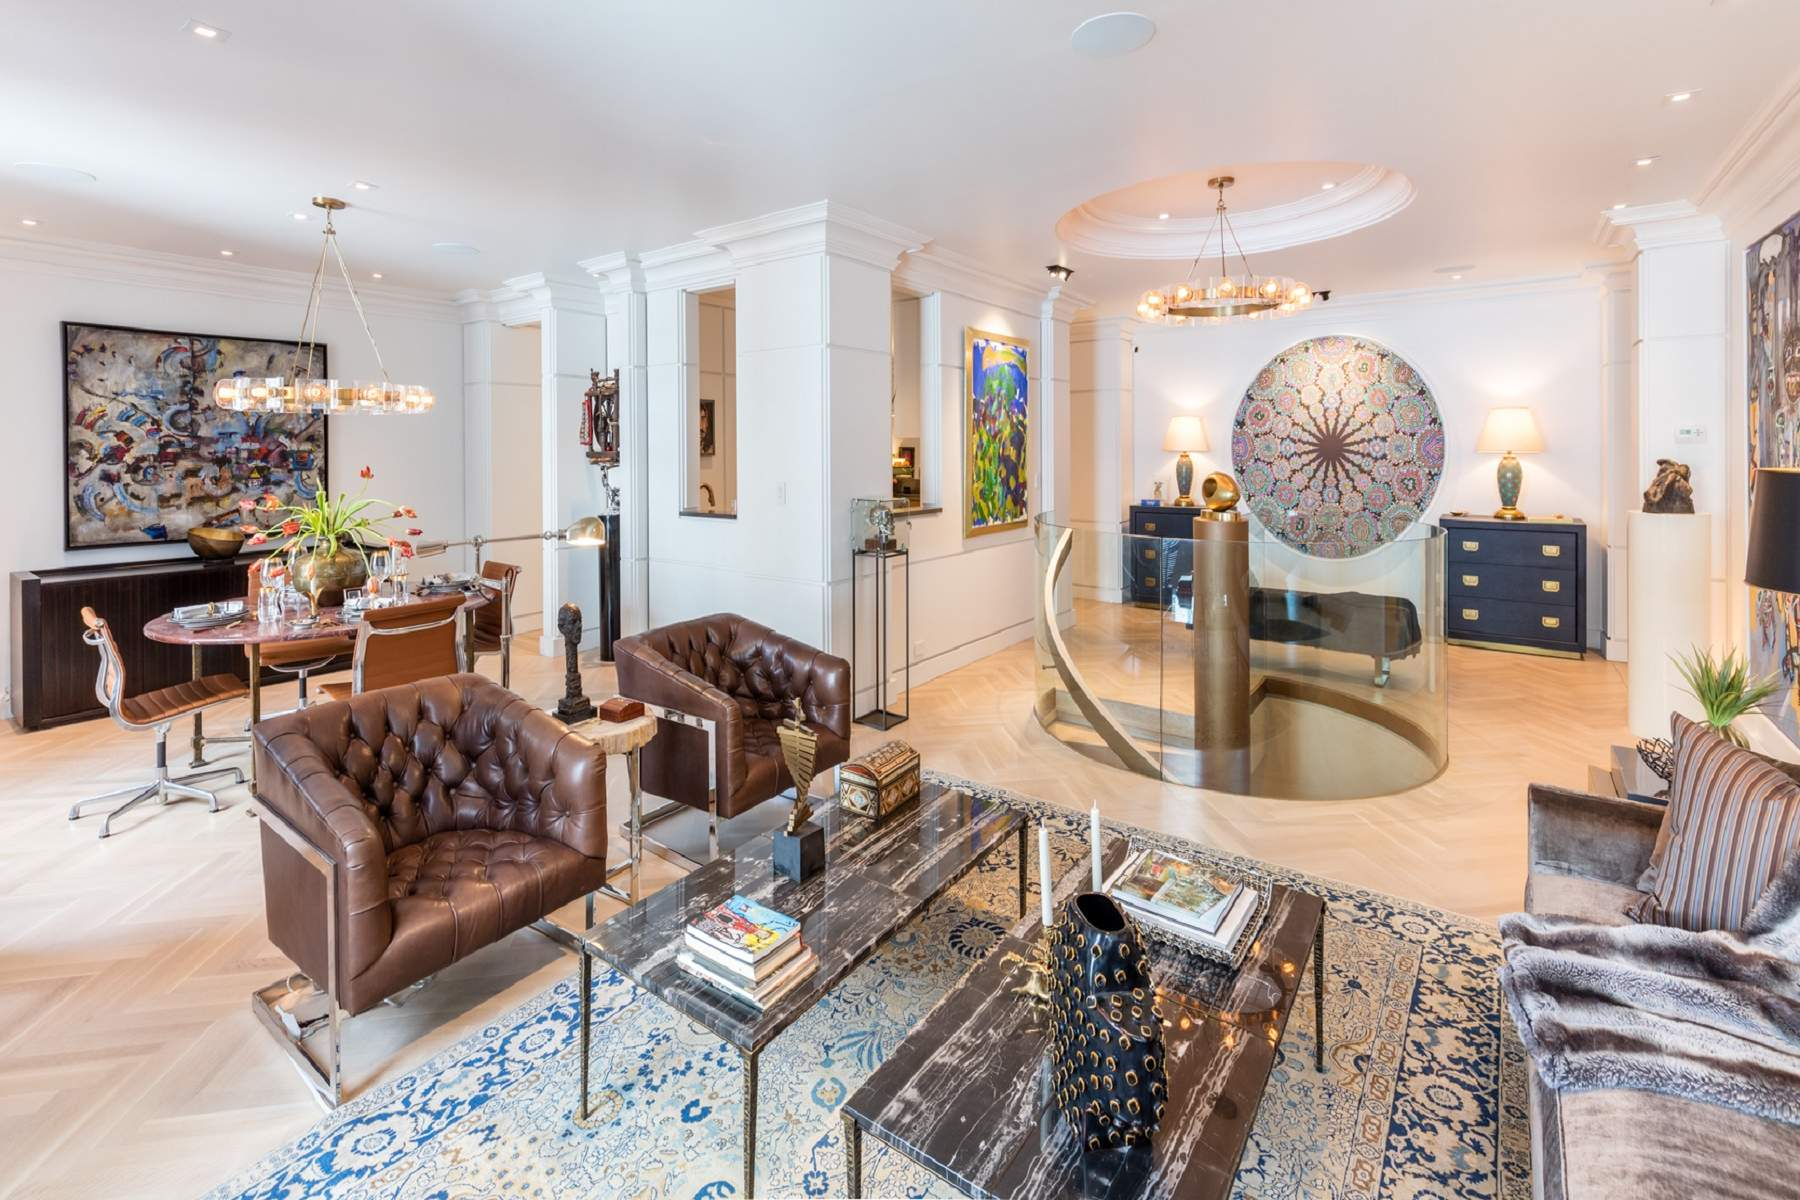 Co-op for Sale at The Ritz Tower 465 Park Avenue, Apt 14A New York, New York 10022 United States